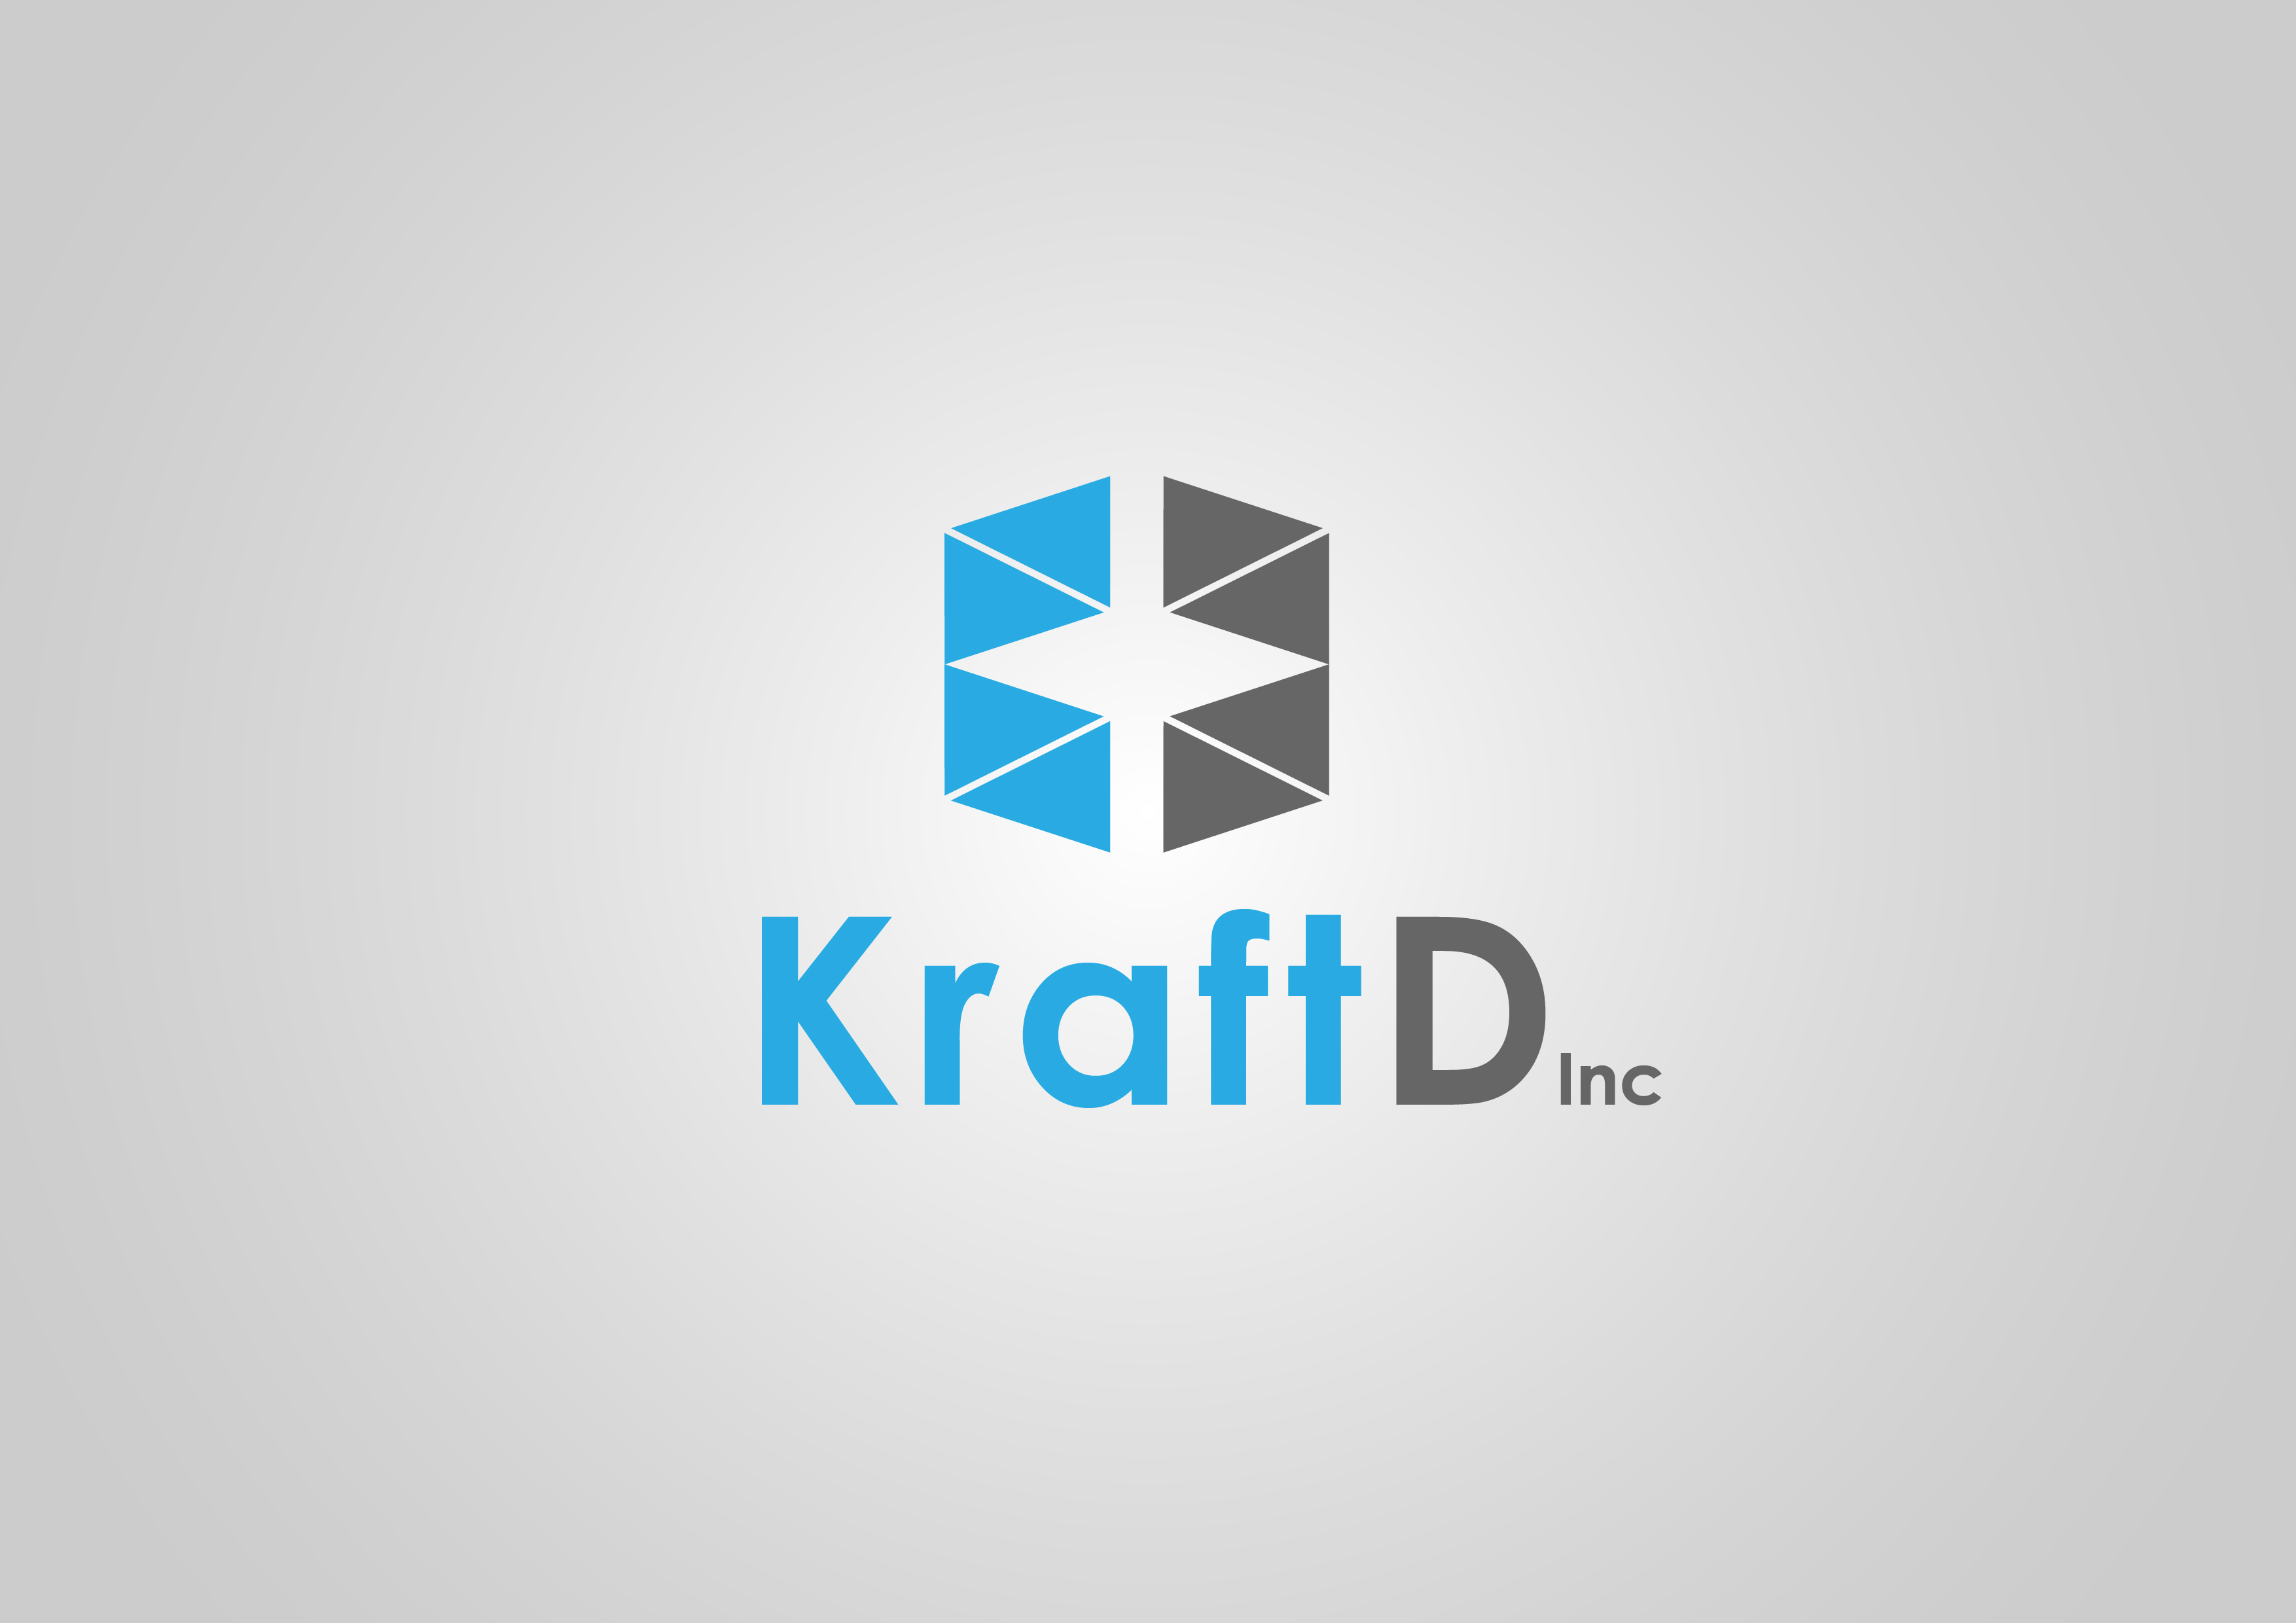 Logo Design by 3draw - Entry No. 348 in the Logo Design Contest Unique Logo Design Wanted for Kraft D Inc.